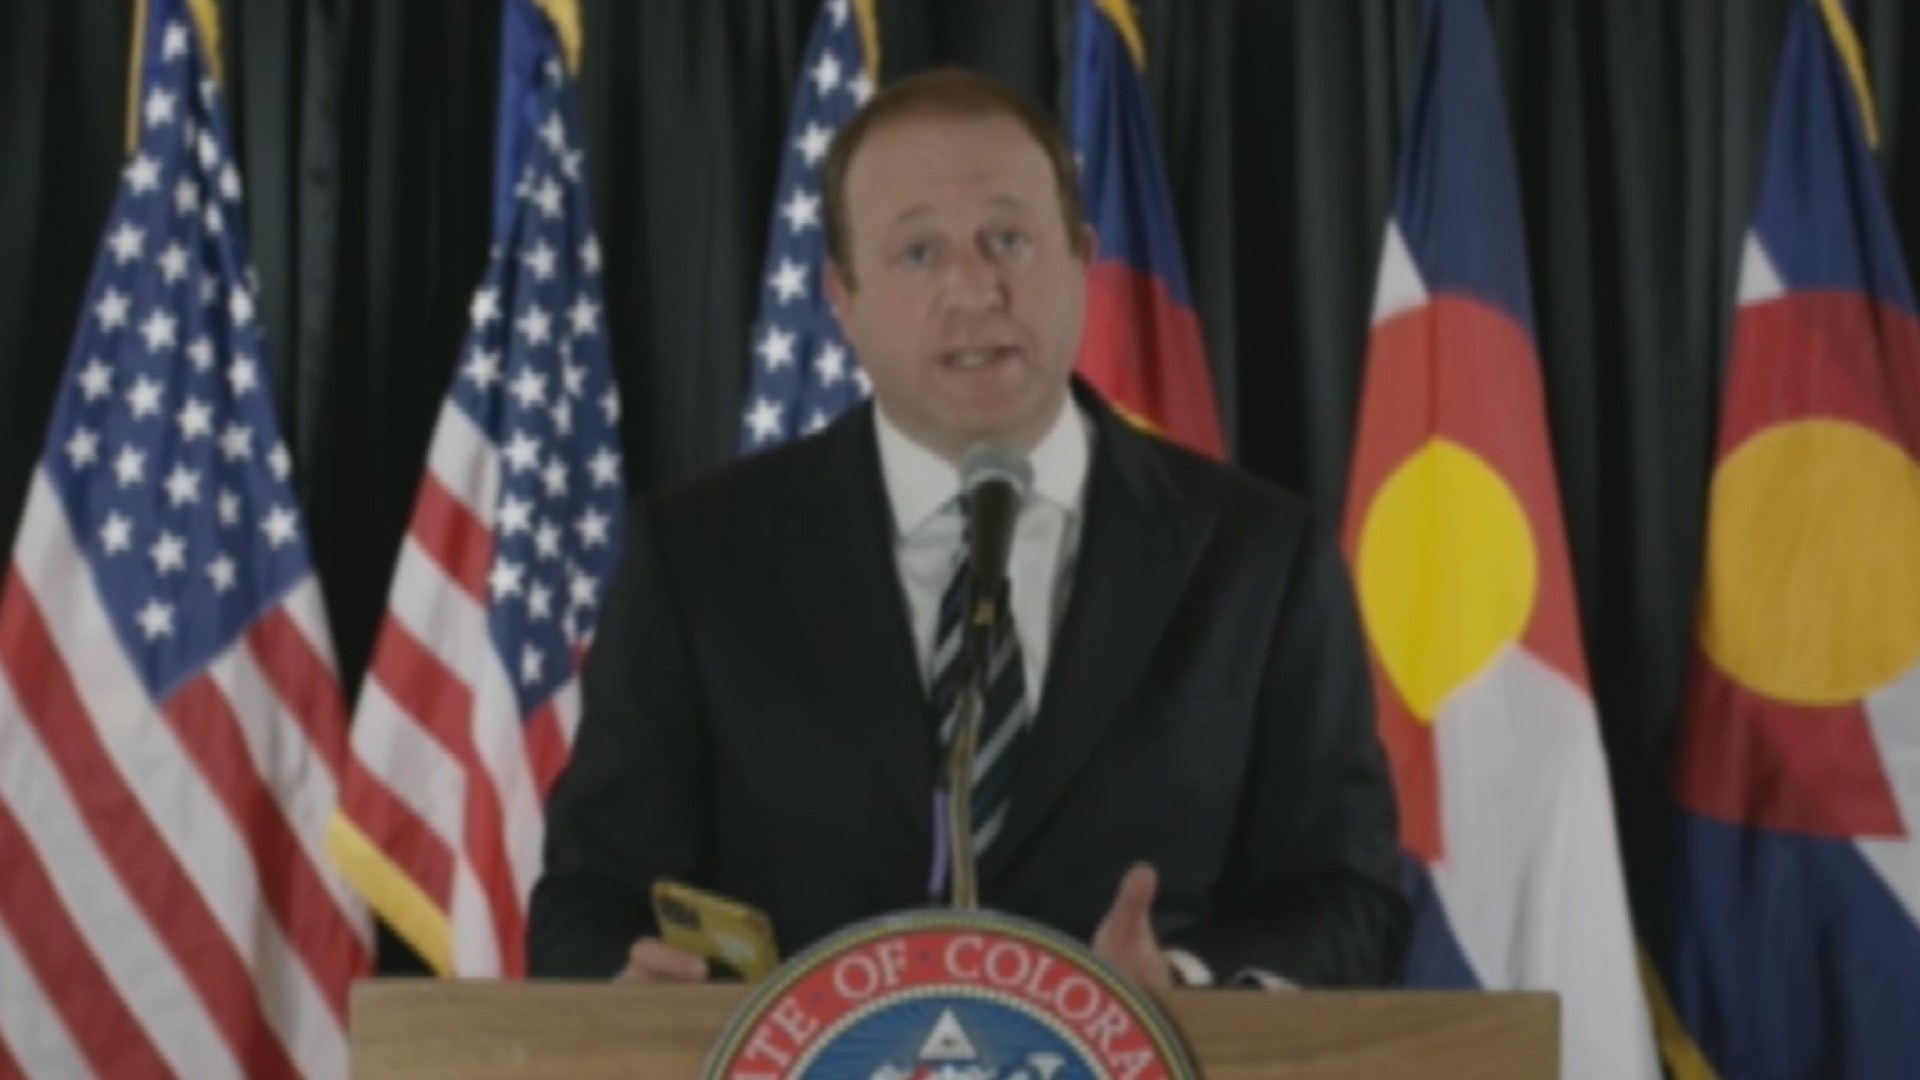 Gov. Jared Polis holds a news conference on COVID-19 in Colorado, on April 29, 2020.